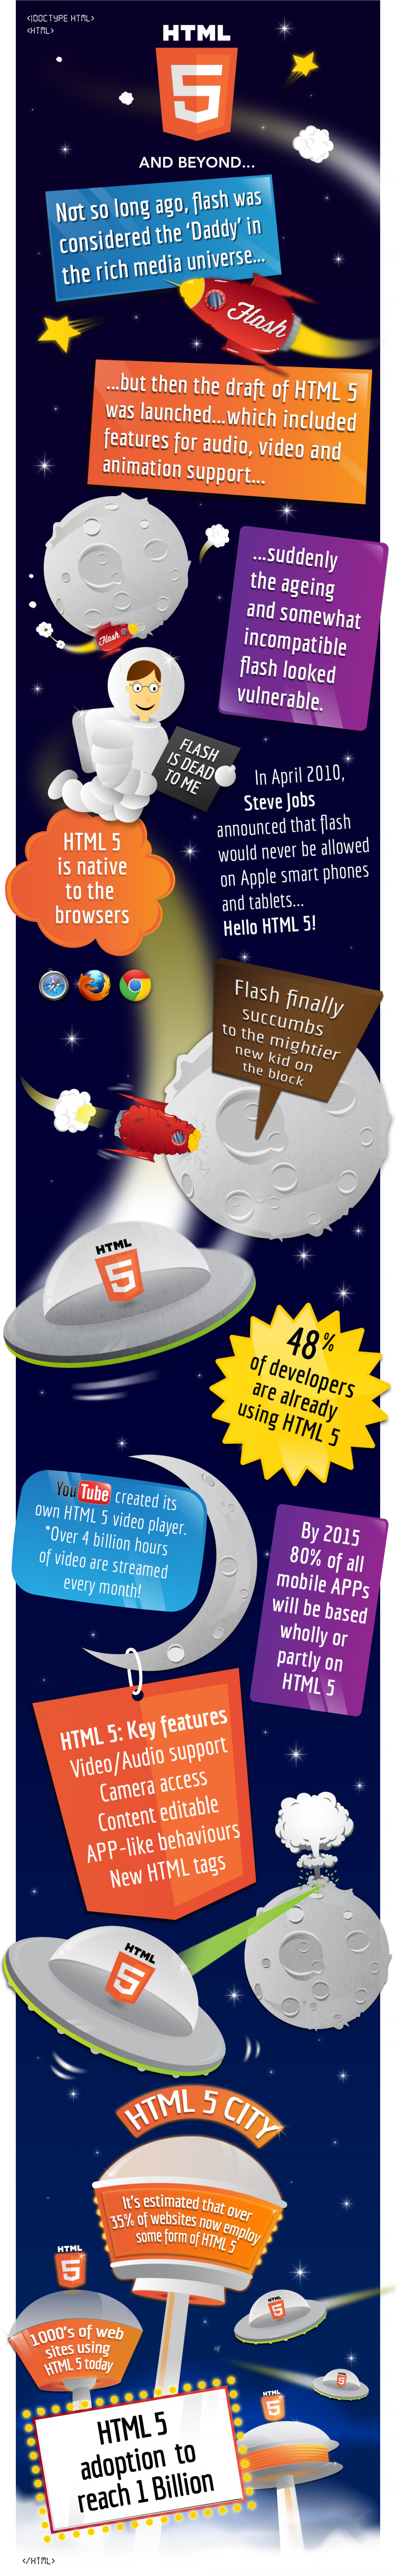 An HTML5 infographic, animated with HTML5 – a world first? Infographic